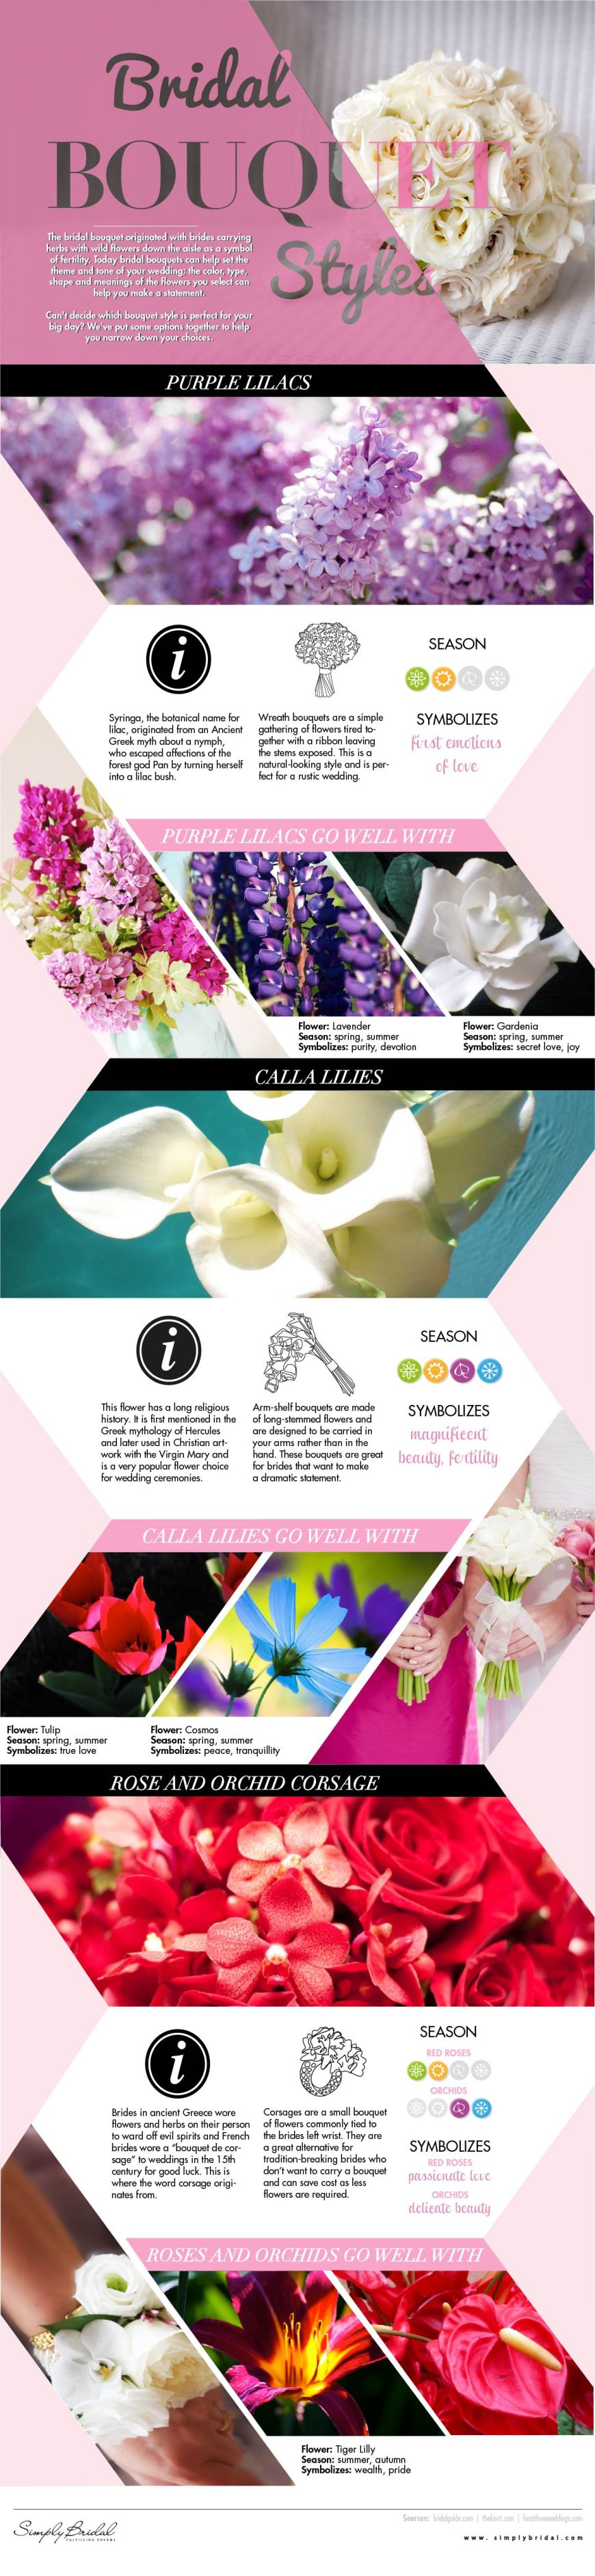 Bouquet Styles Infographic Long